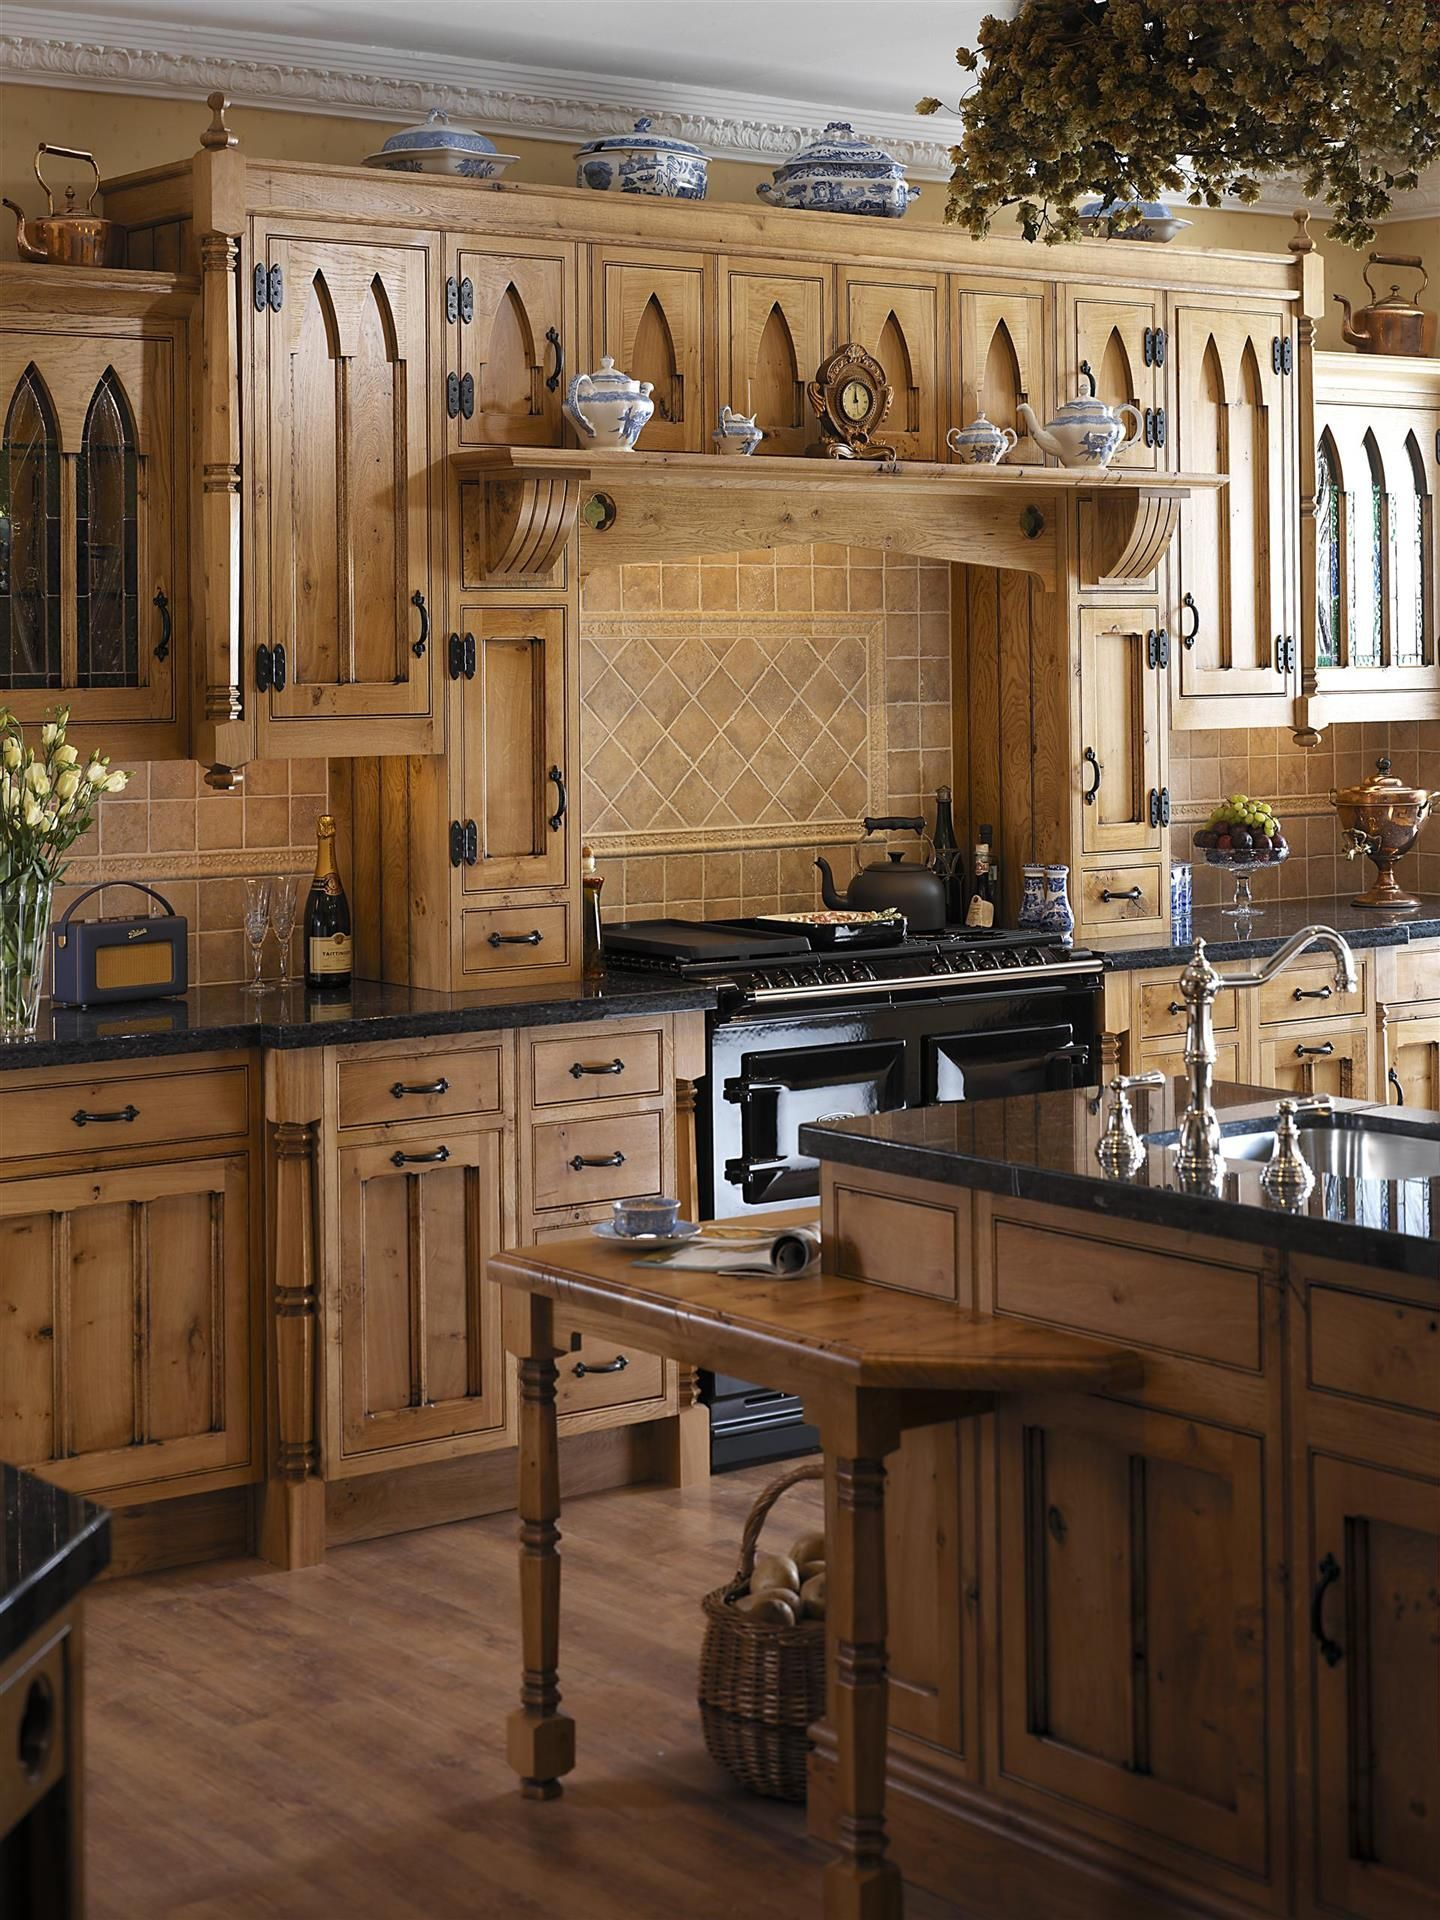 Gothic Kitchen With Wooden Cabinets Designing A Gothic Kitchen In Your House & Designing A Gothic Kitchen In Your House | Live it | Pinterest ...